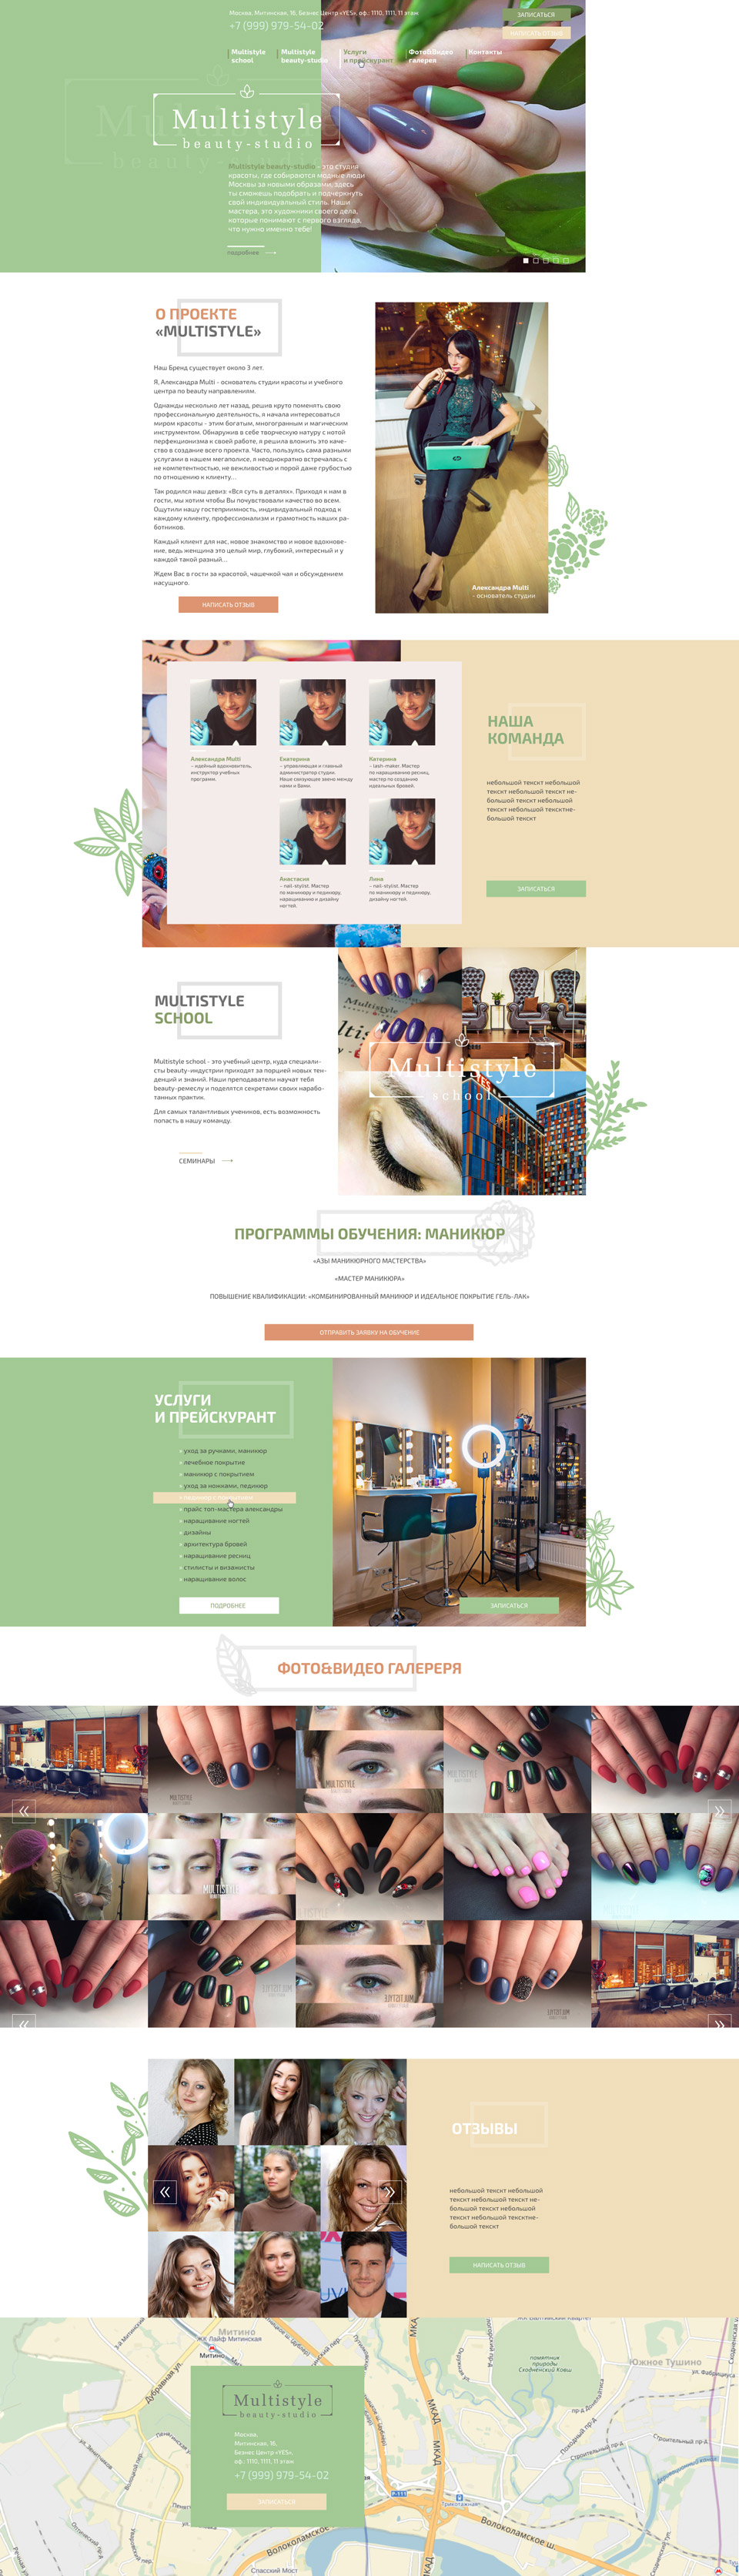 314 MULTISTYLE BEAUTY STUDIO Web Design Maxi